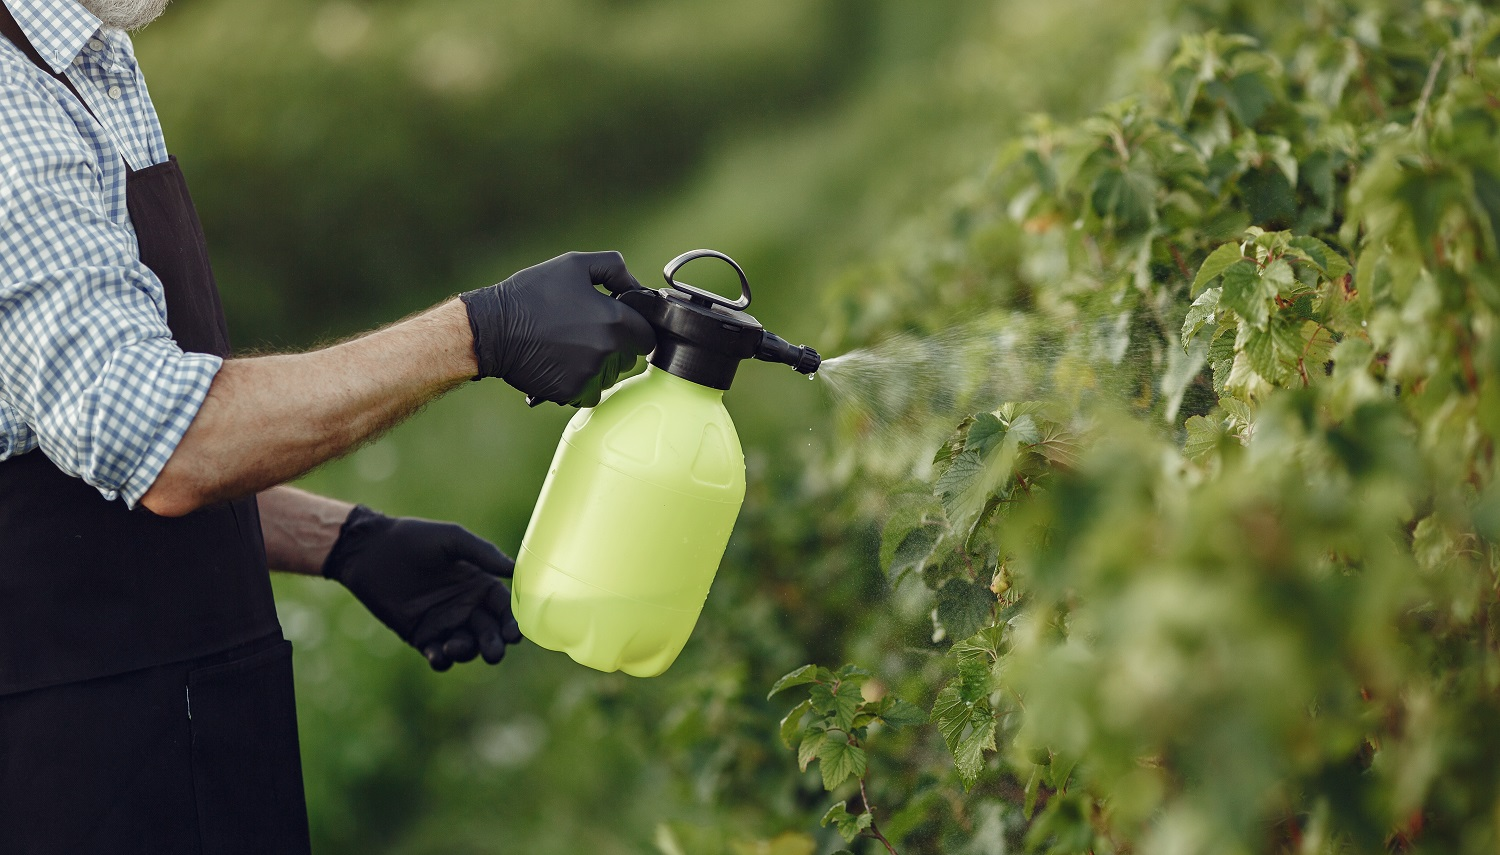 Farmer spraying vegetables in the garden with herbicides. Man in a black apron.